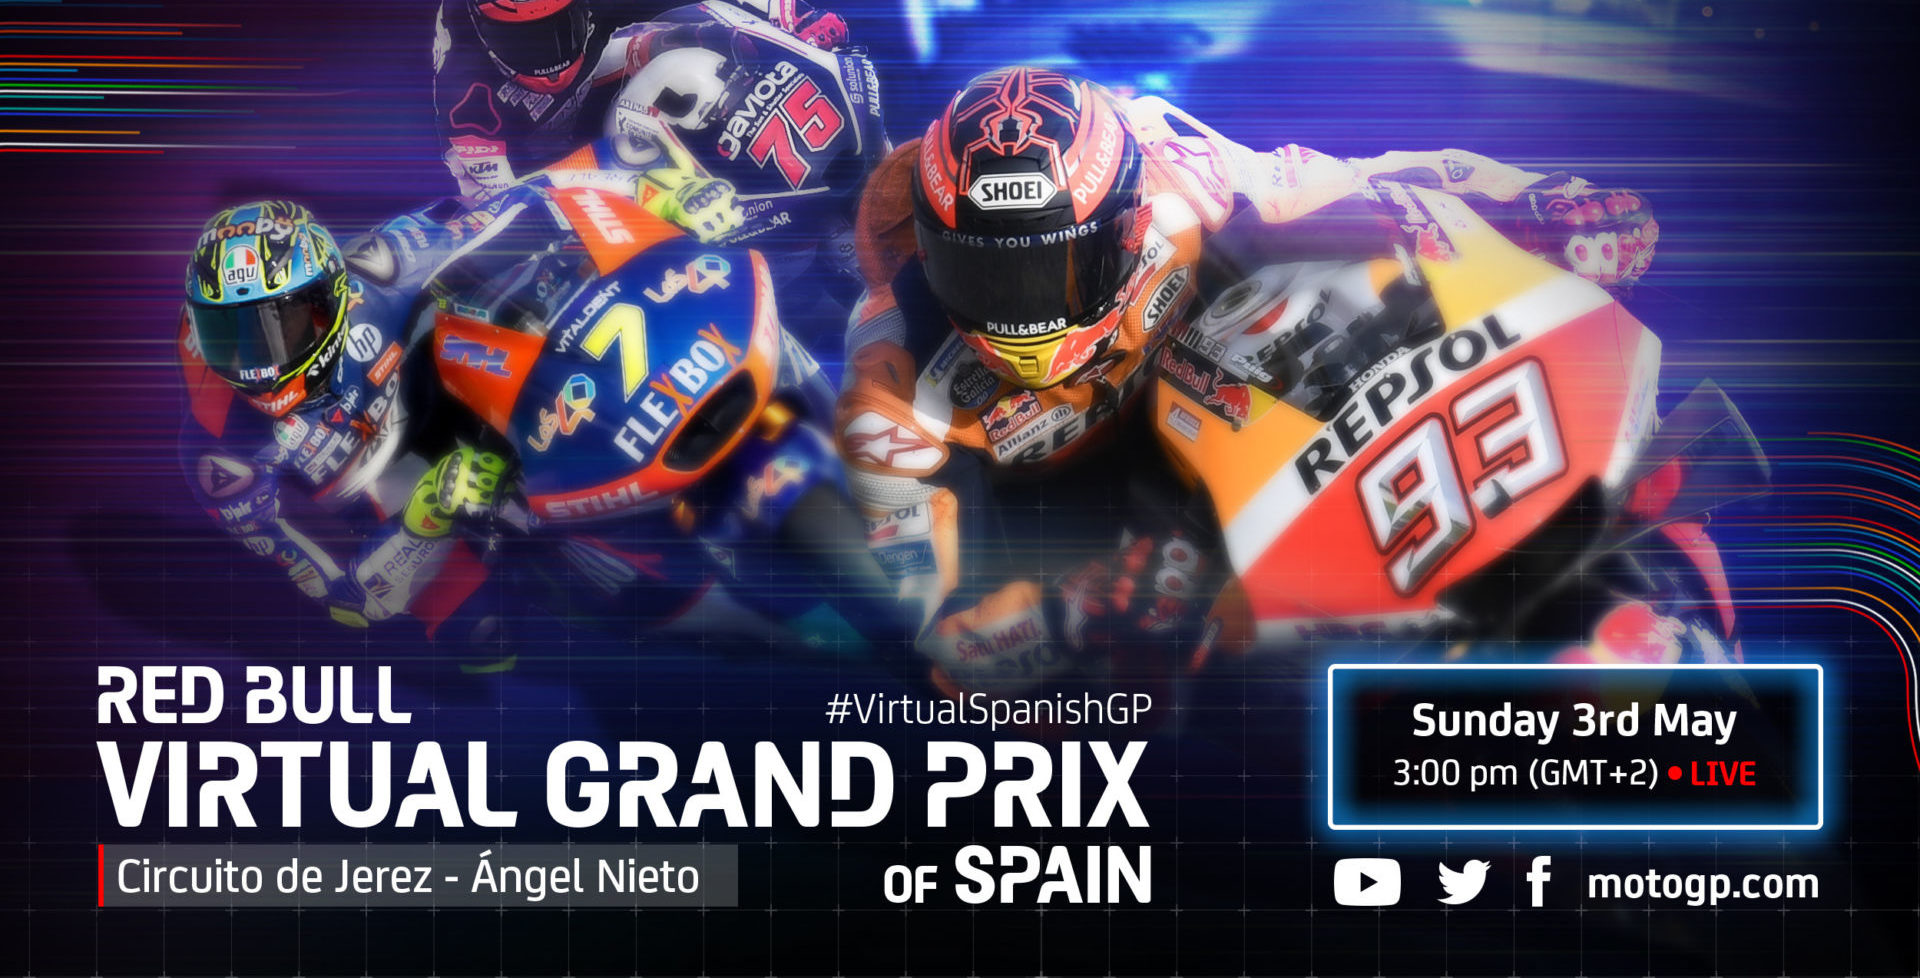 The Red Bull Virtual Grand Prix of Spain is scheduled Sunday, May 3. Image courtesy of Dorna.